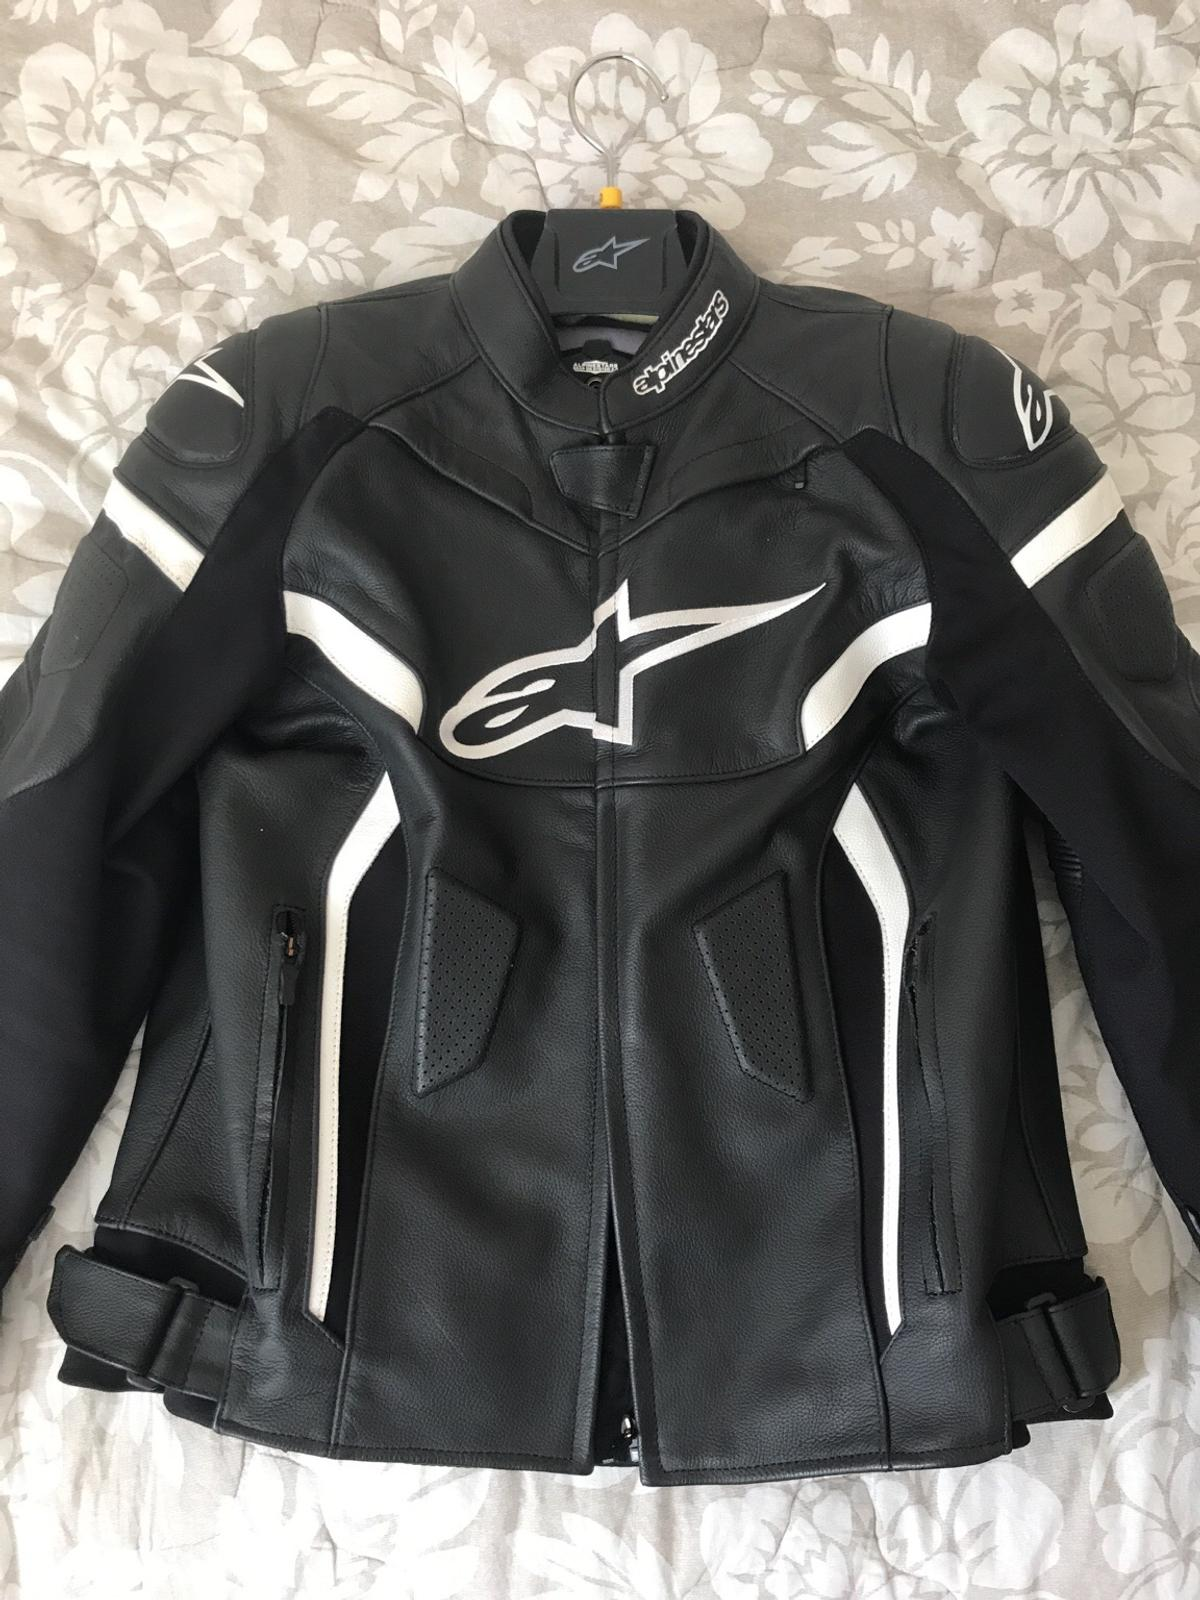 Alpinestars Leather Jacket >> Alpinestars Leather Jacket In W1t Camden For 170 00 For Sale Shpock